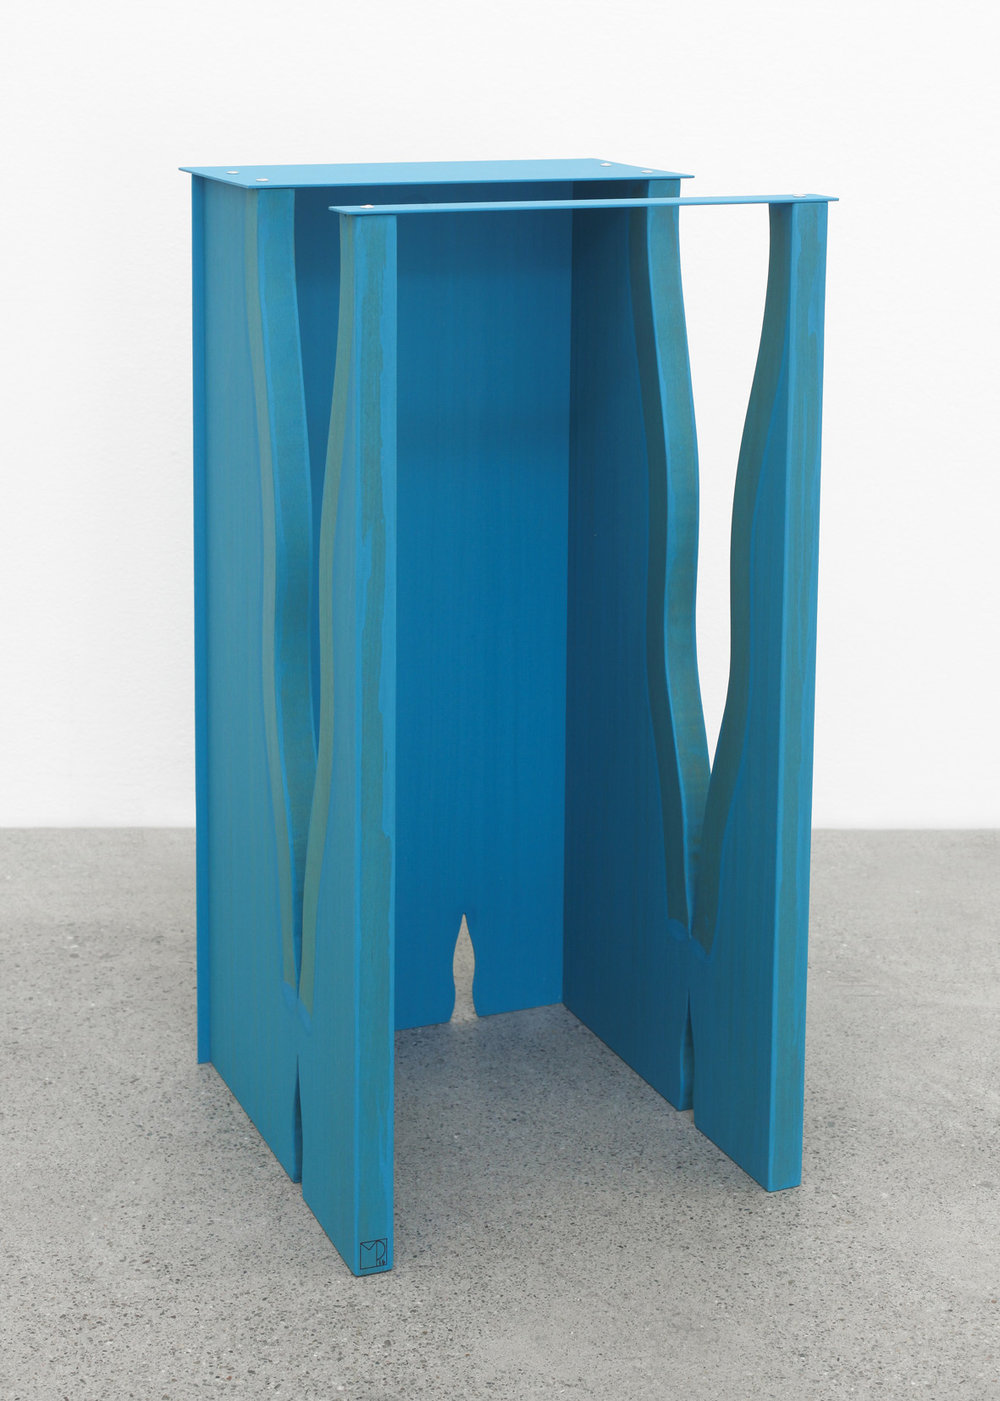 Cracked Stool 2016 Birch plywood, euro-beech hardwood, aluminum, aluminum rivets, acrylic 50.8 x 25.4 x 25.4 cm / 20 x 10 x 10 in